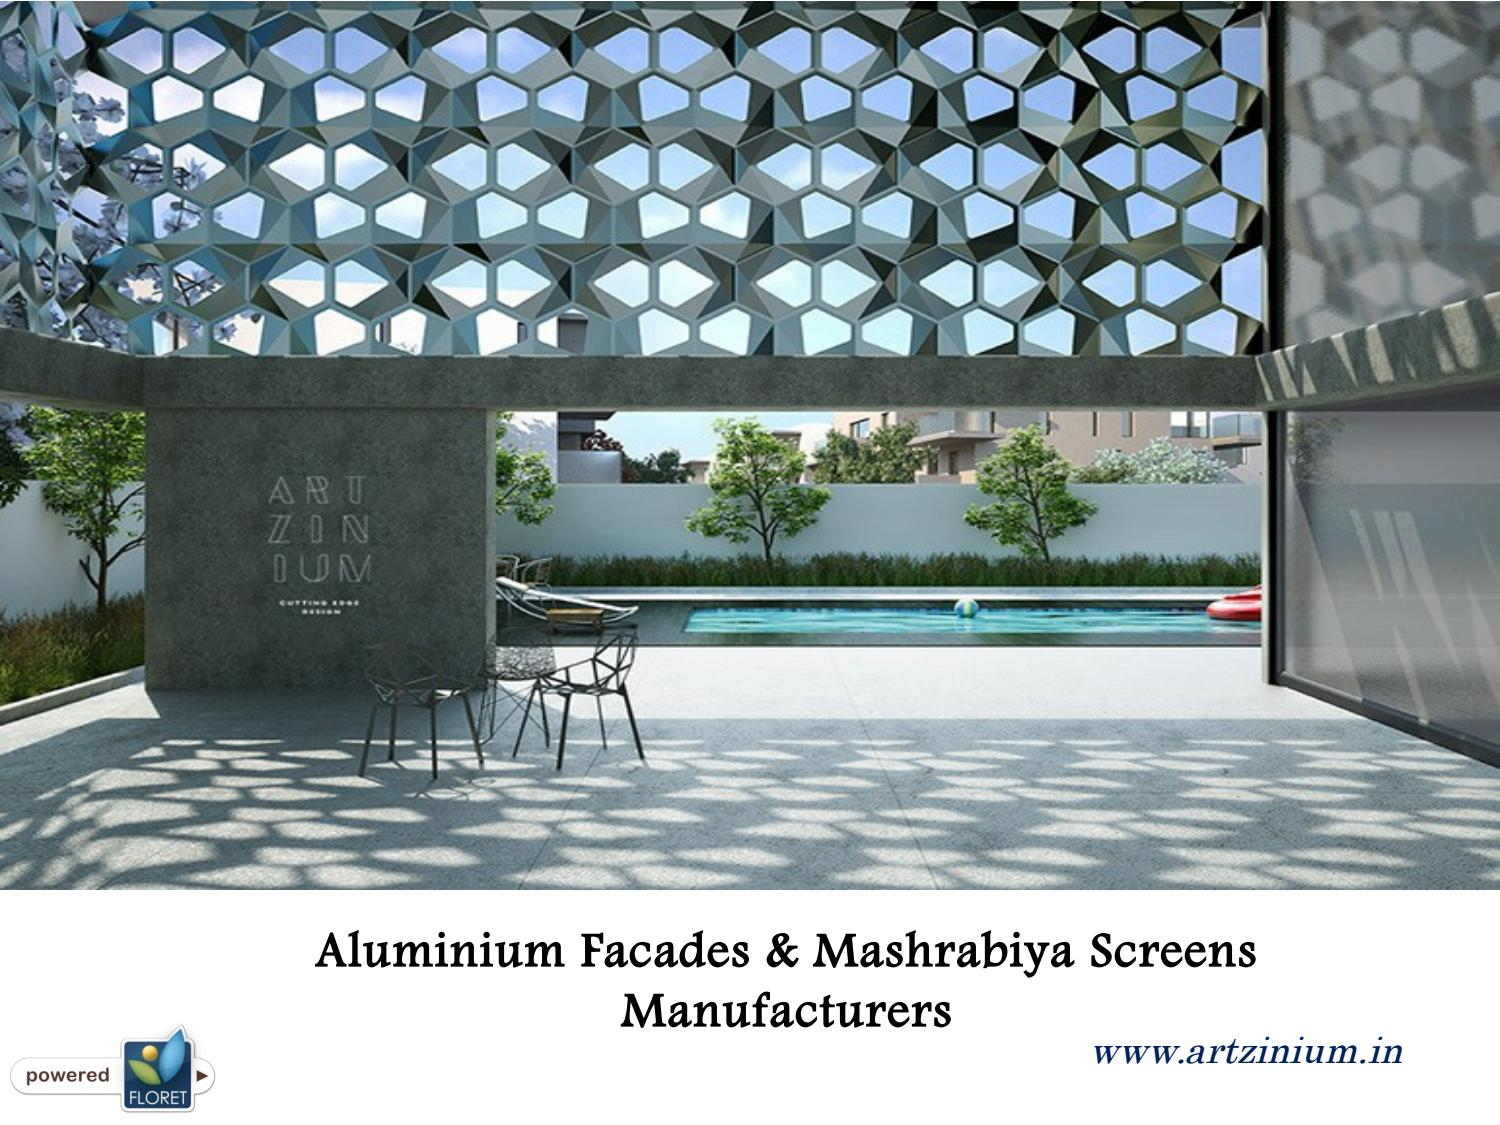 Aluminium facades & mashrabiya screens manufacturers by